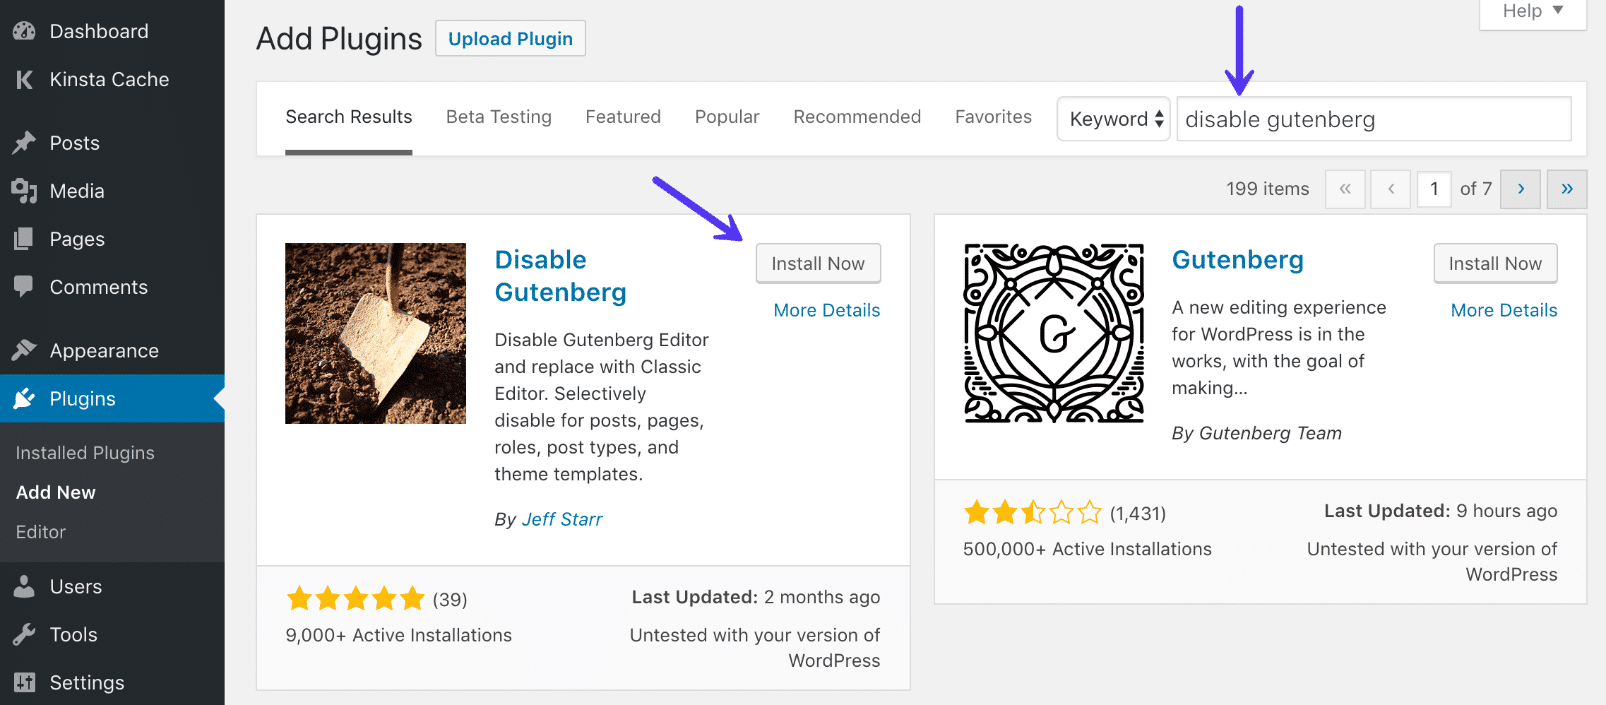 Install the Disable Gutenberg WordPress plugin